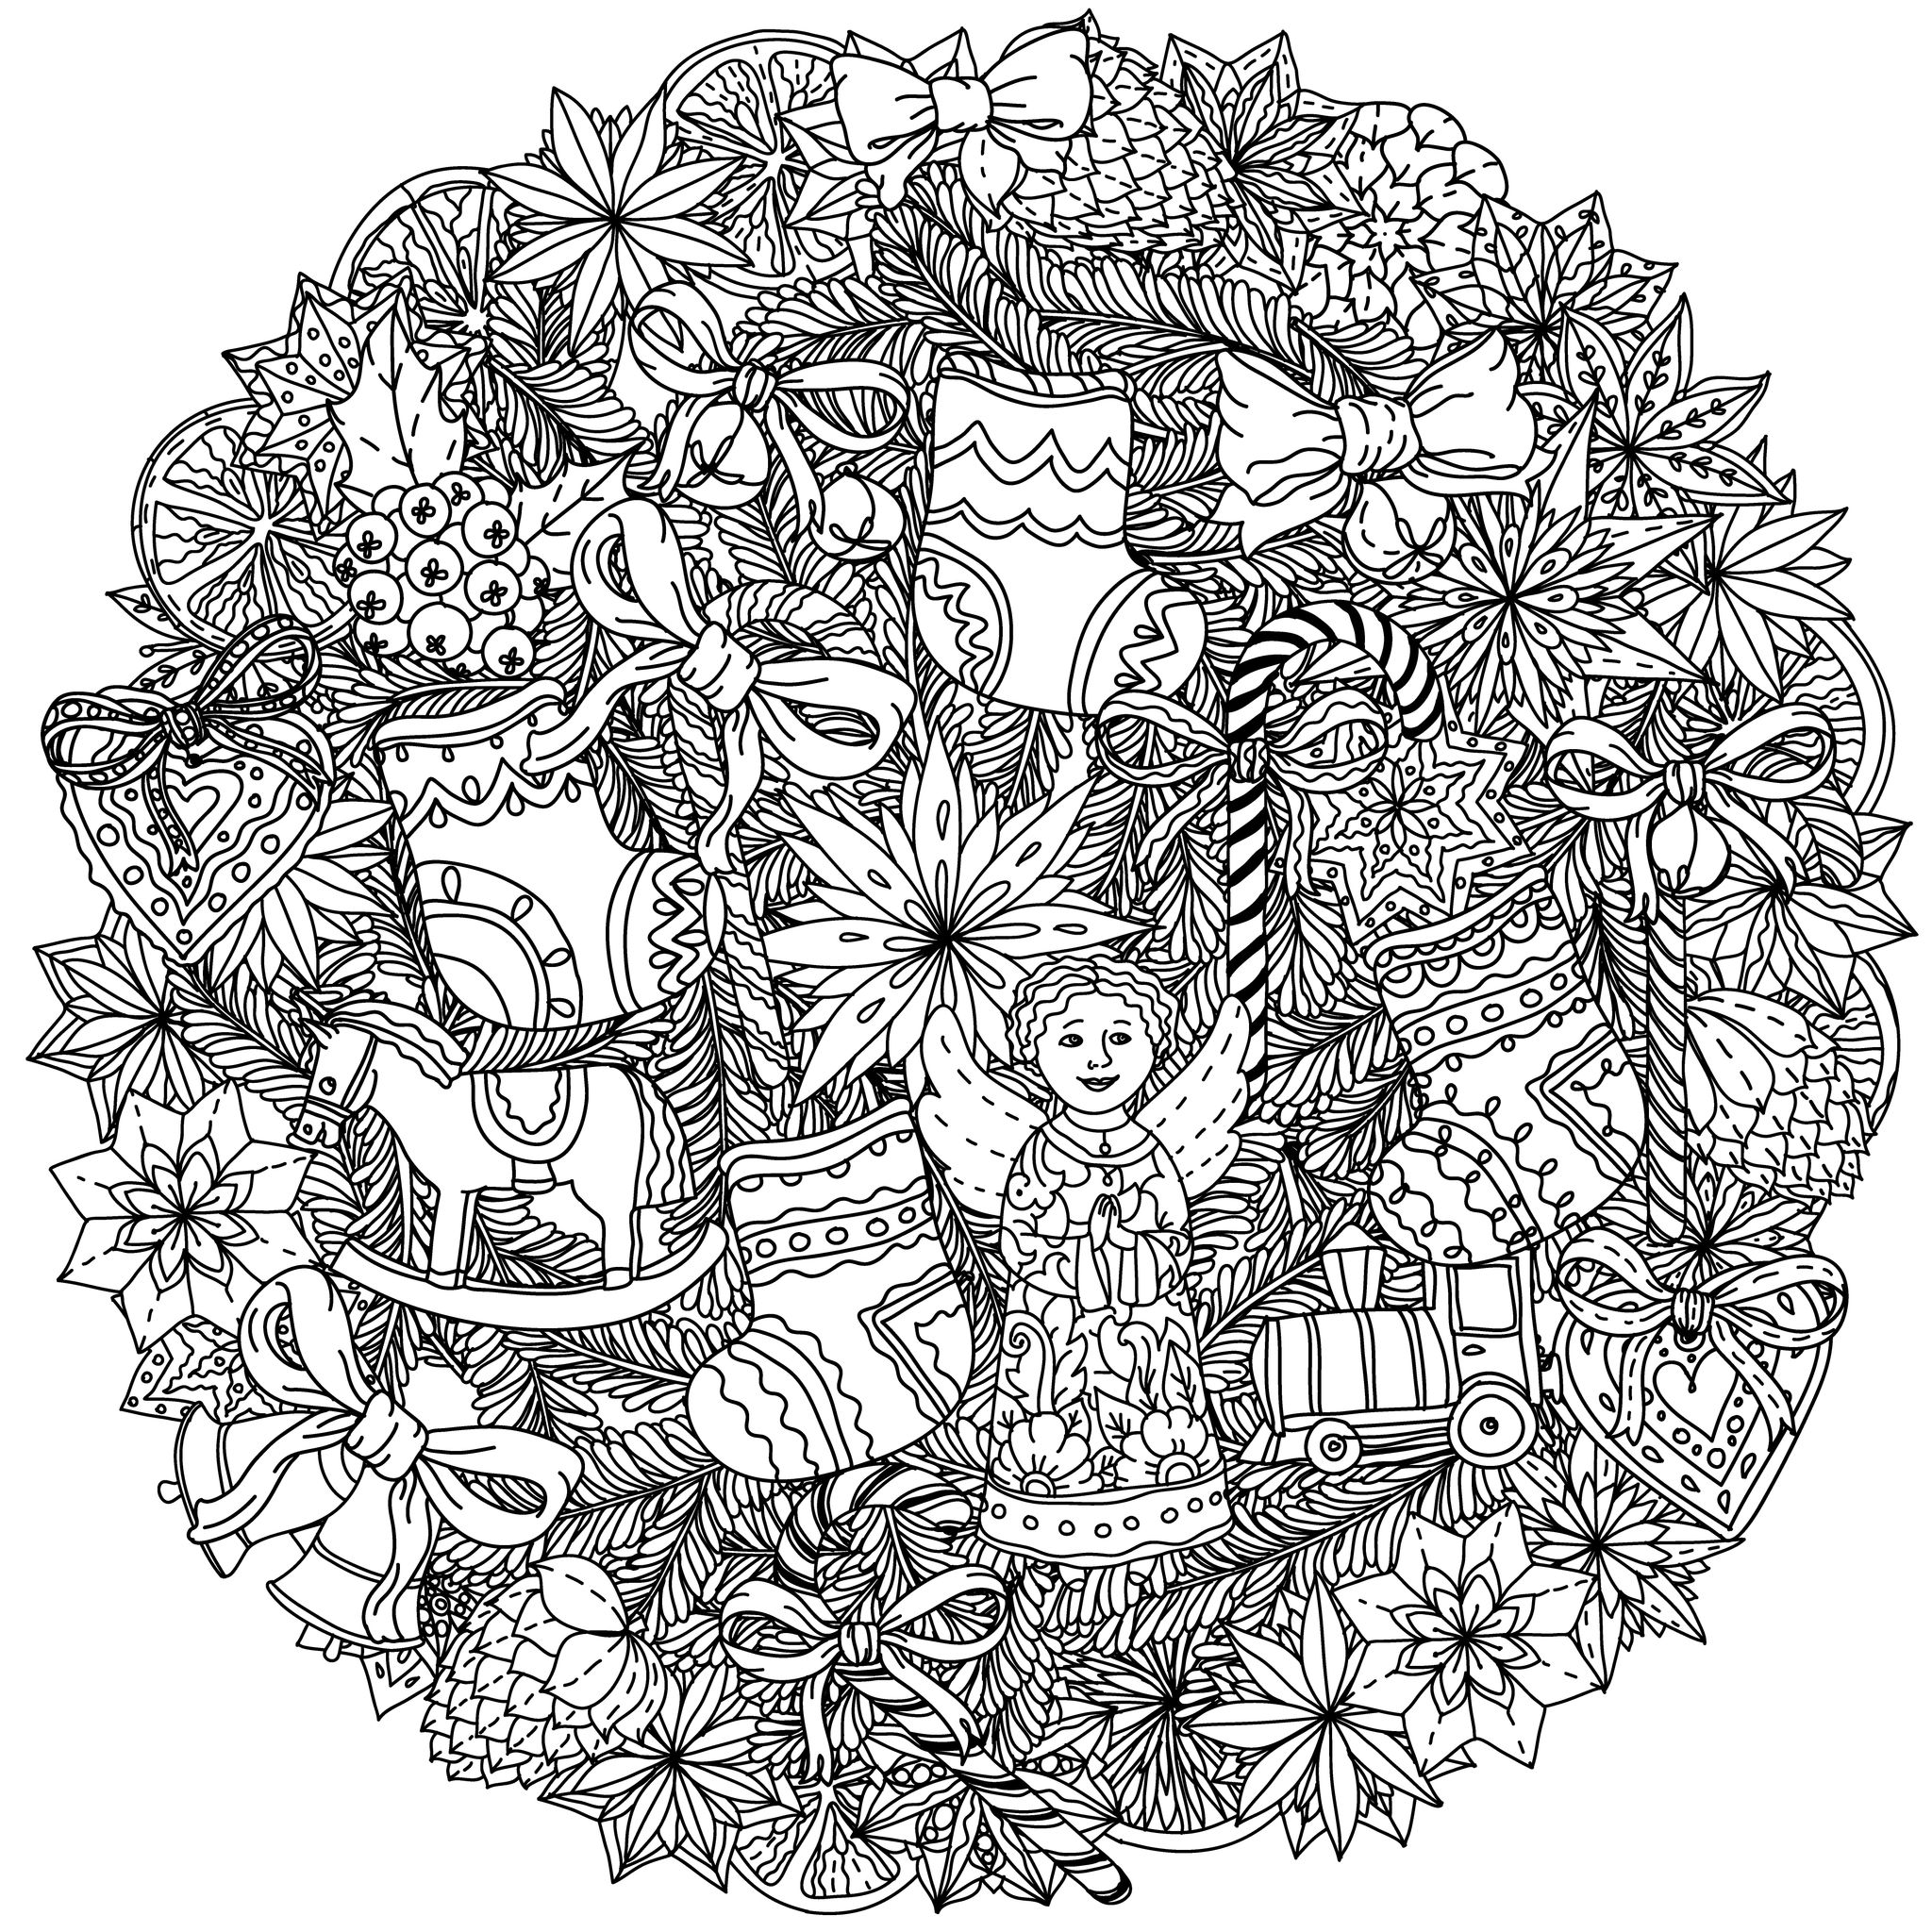 coloring page christmas mandala christmas wreath with decorative items angels ribbons stars fruits